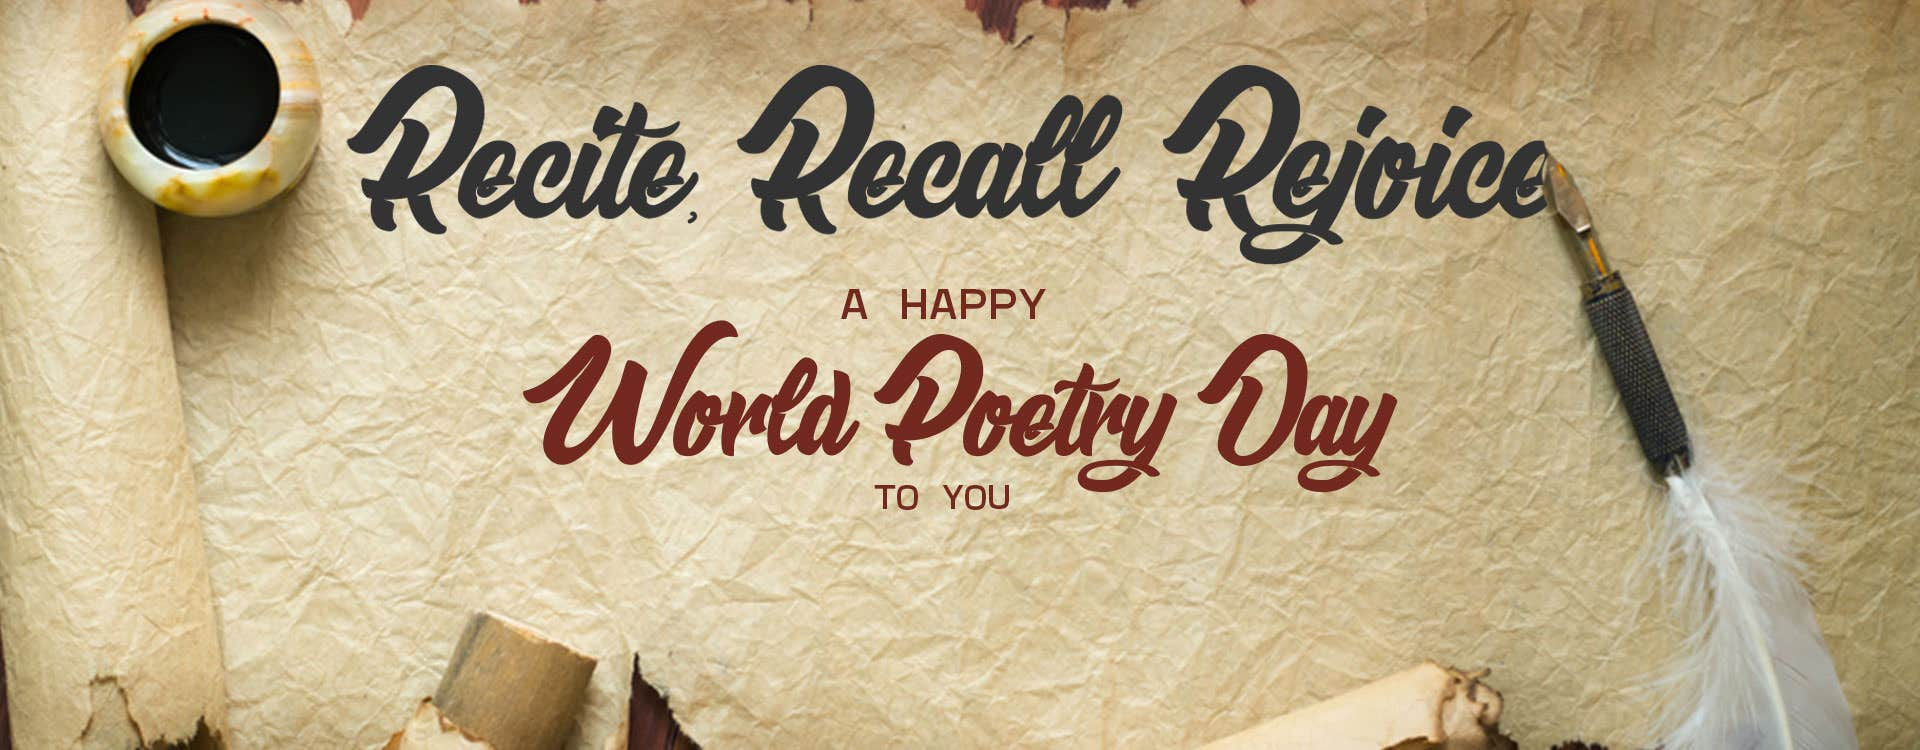 Recite, Recall & Rejoice - A Happy World Poetry Day To You